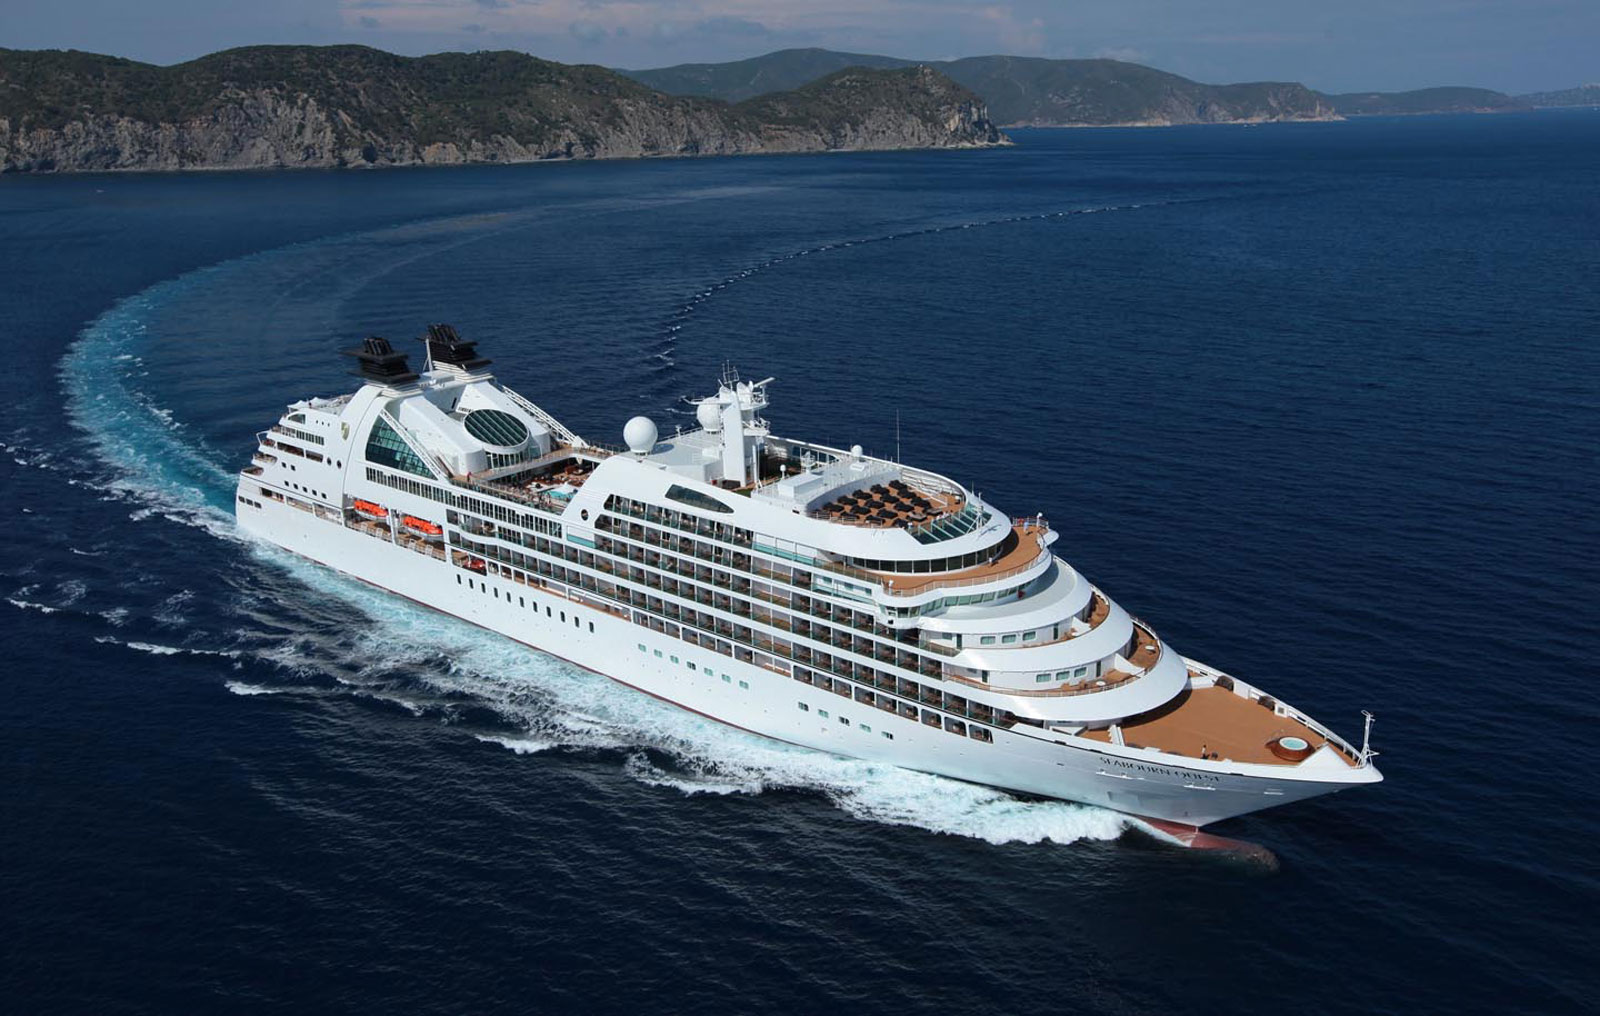 Seabourn orders new luxury cruise ship - Other Cruise ...